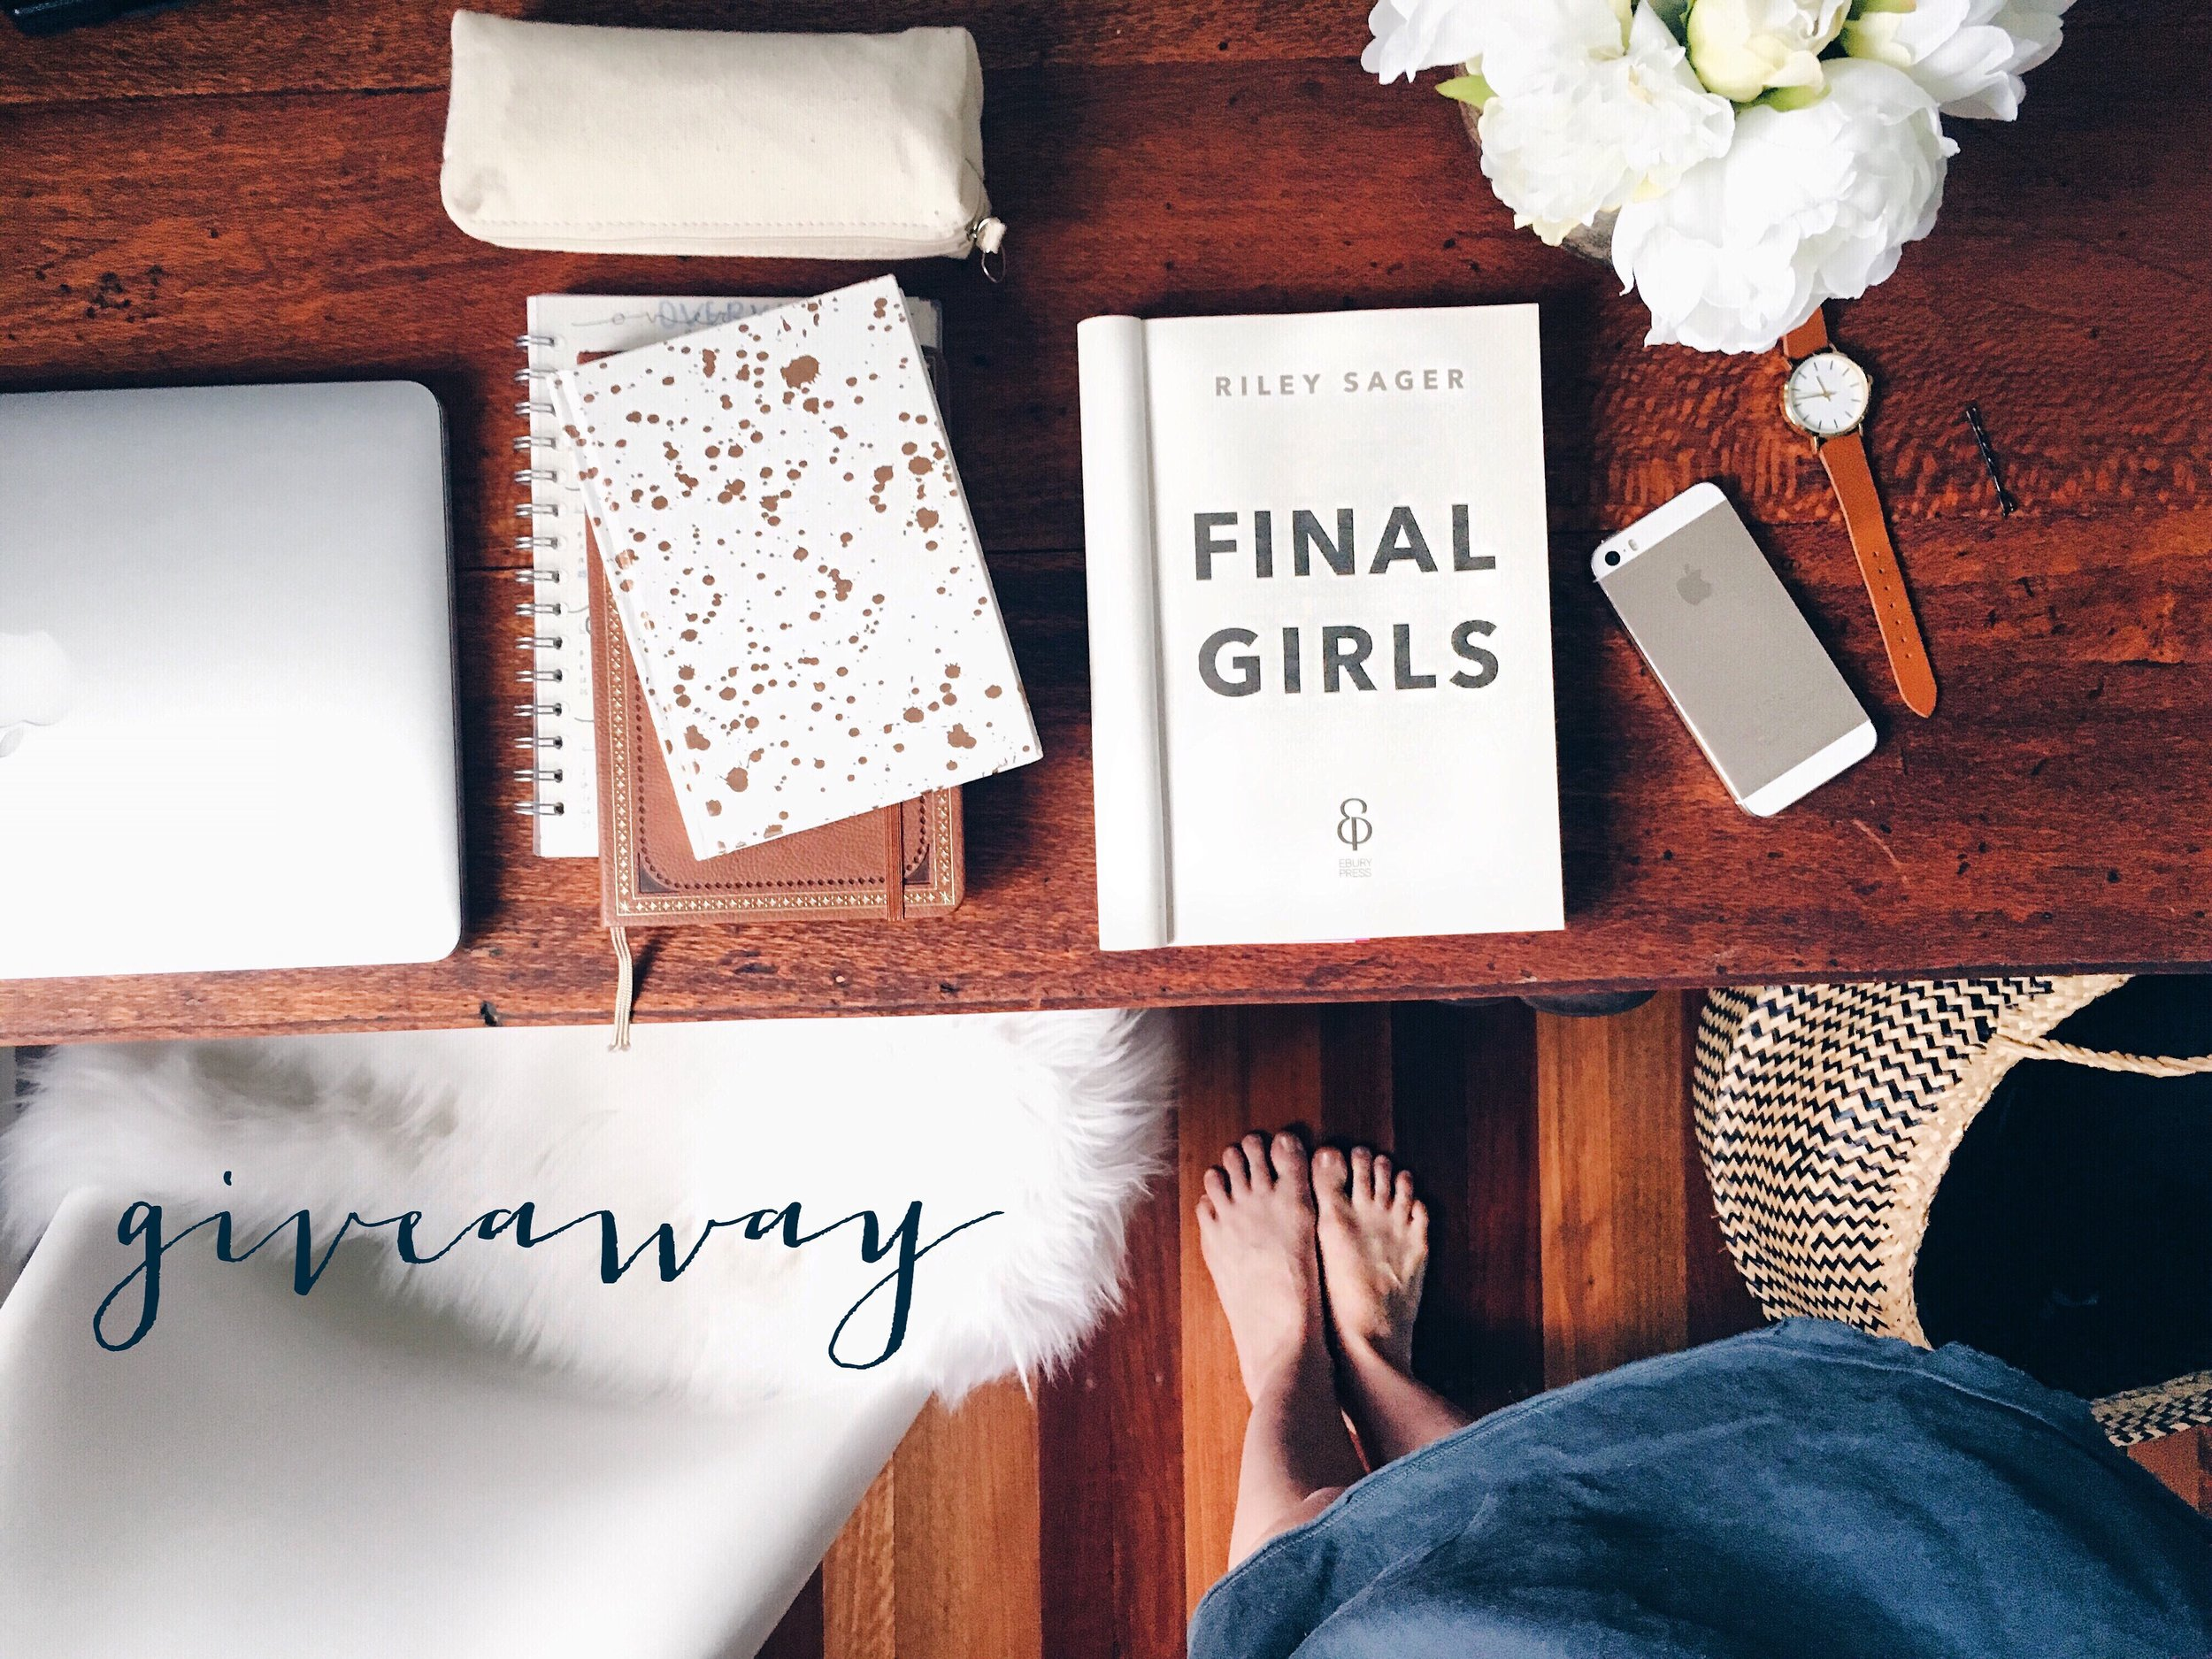 GIVEAWAY - Join the giveaway on my Instagram account for the chance to win a copy of FINAL GIRLS. ( Australian and NZ residents only)